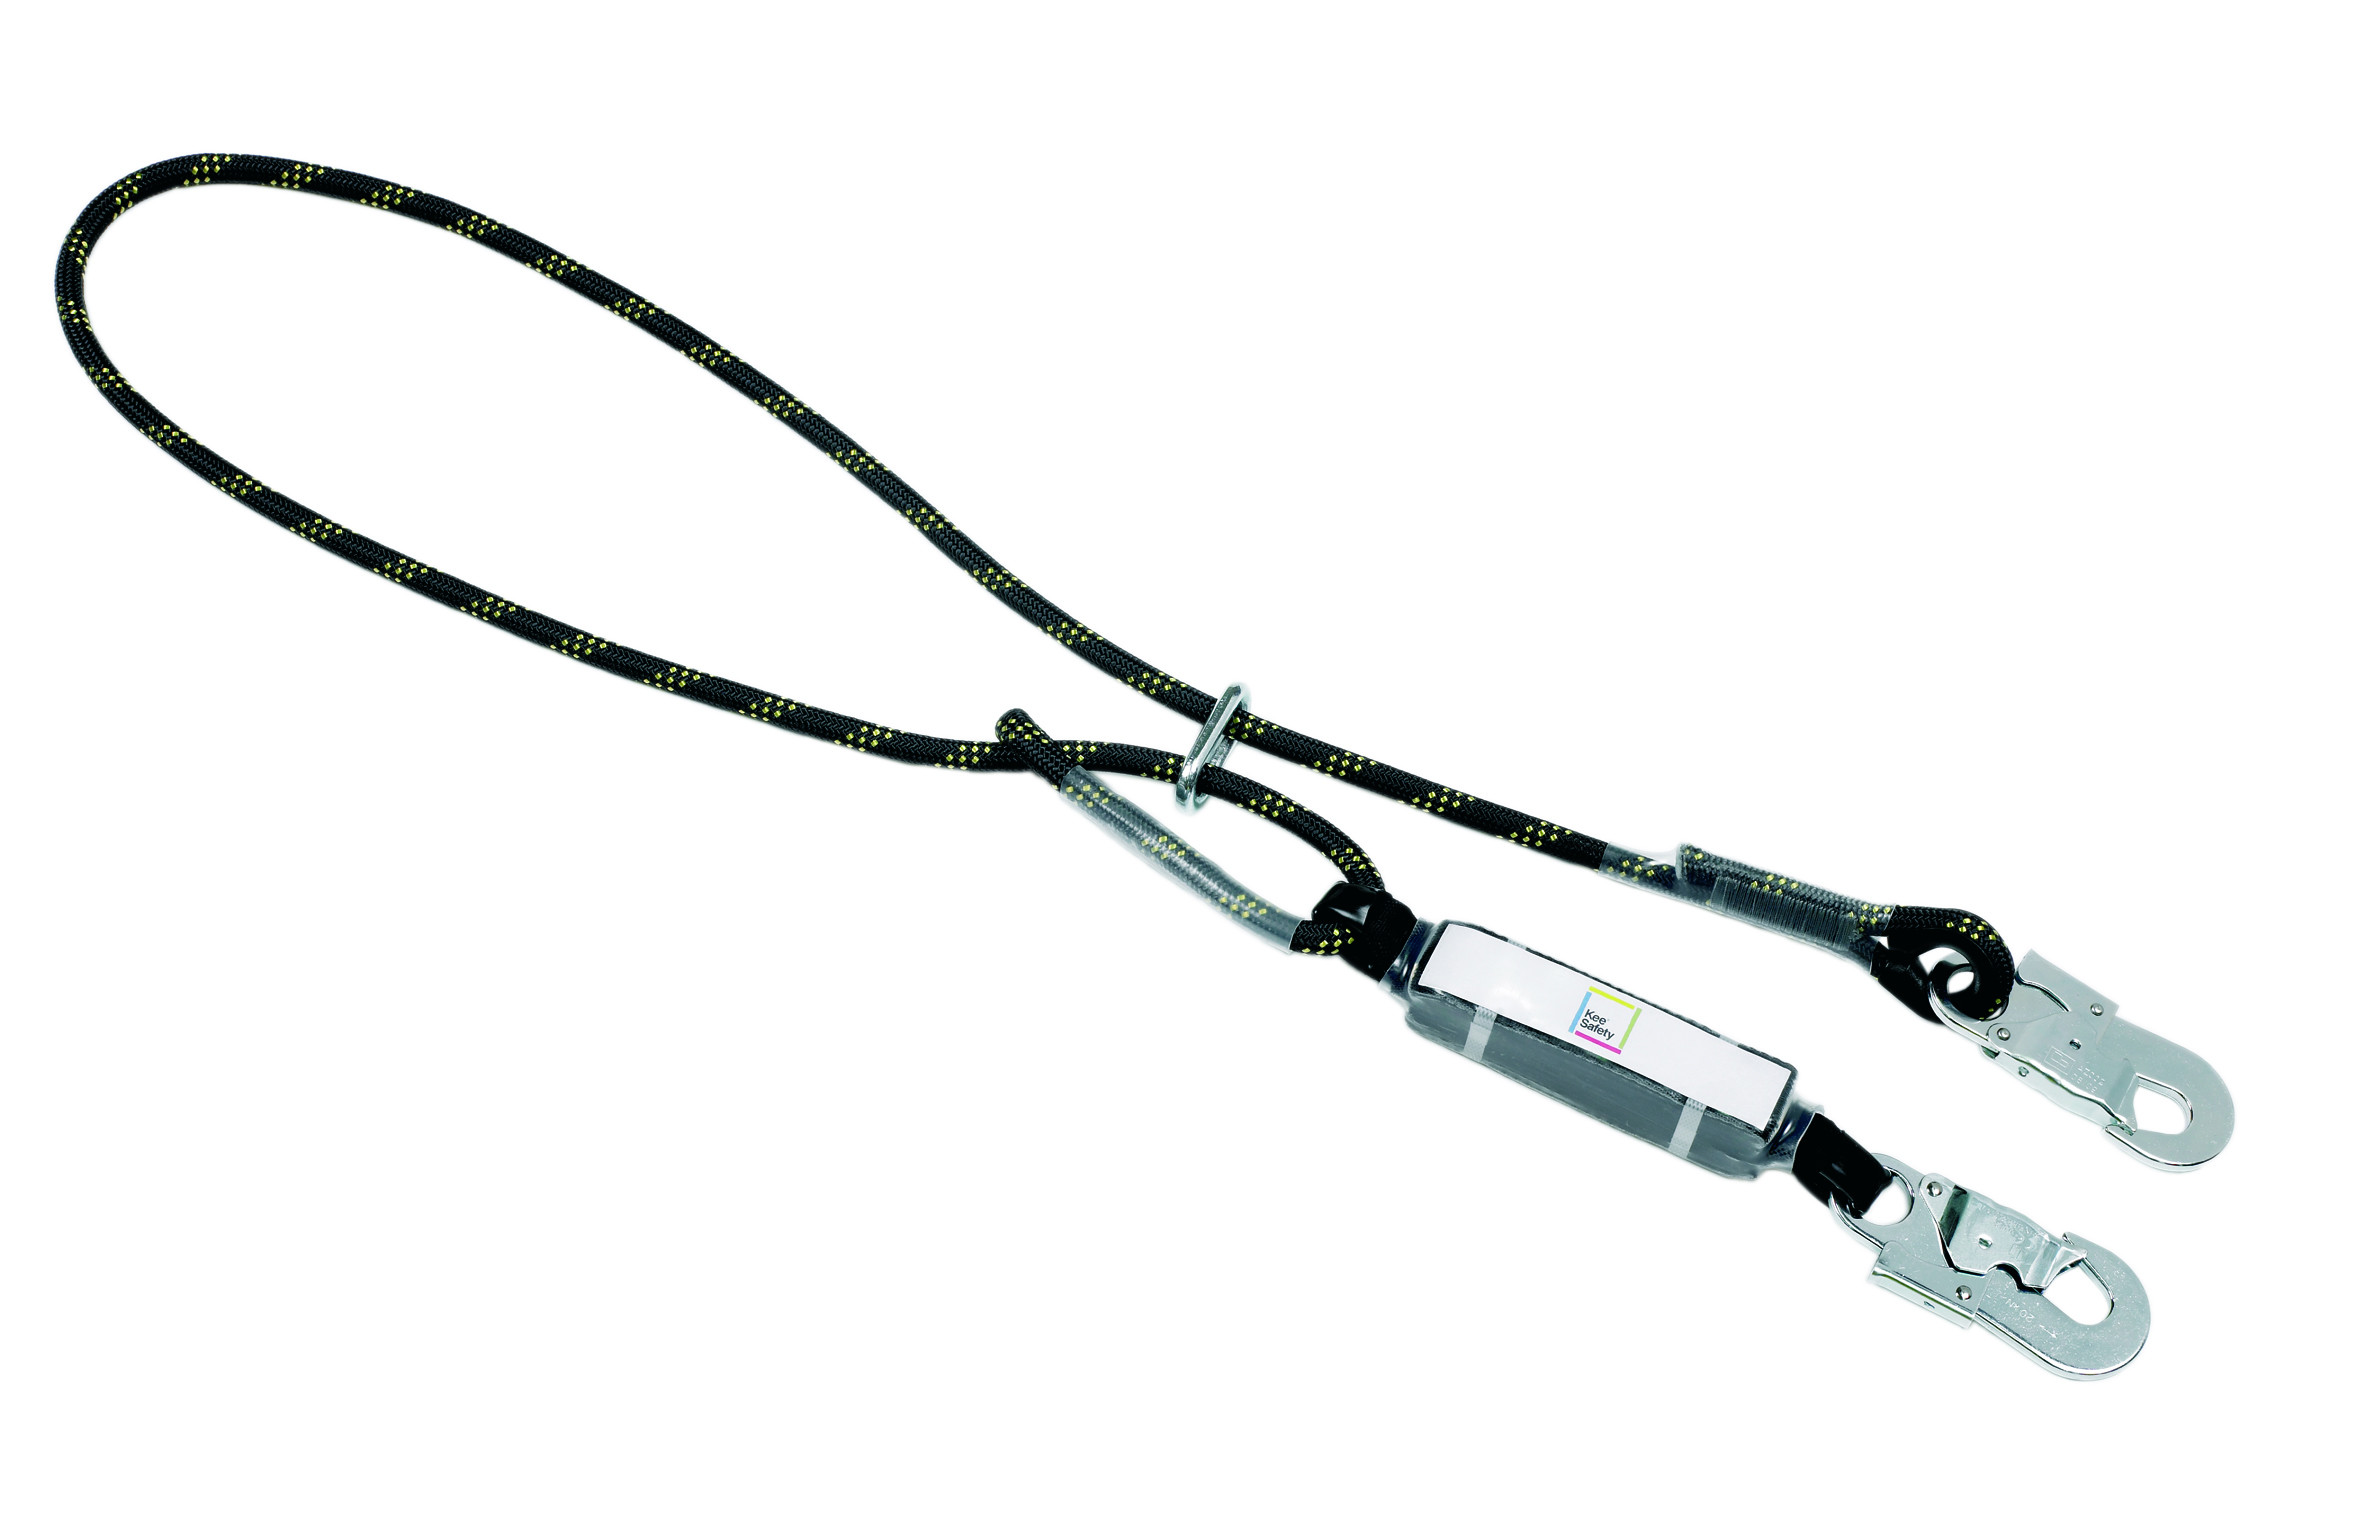 2 Metre Adjustable Energy Absorbing Lanyard